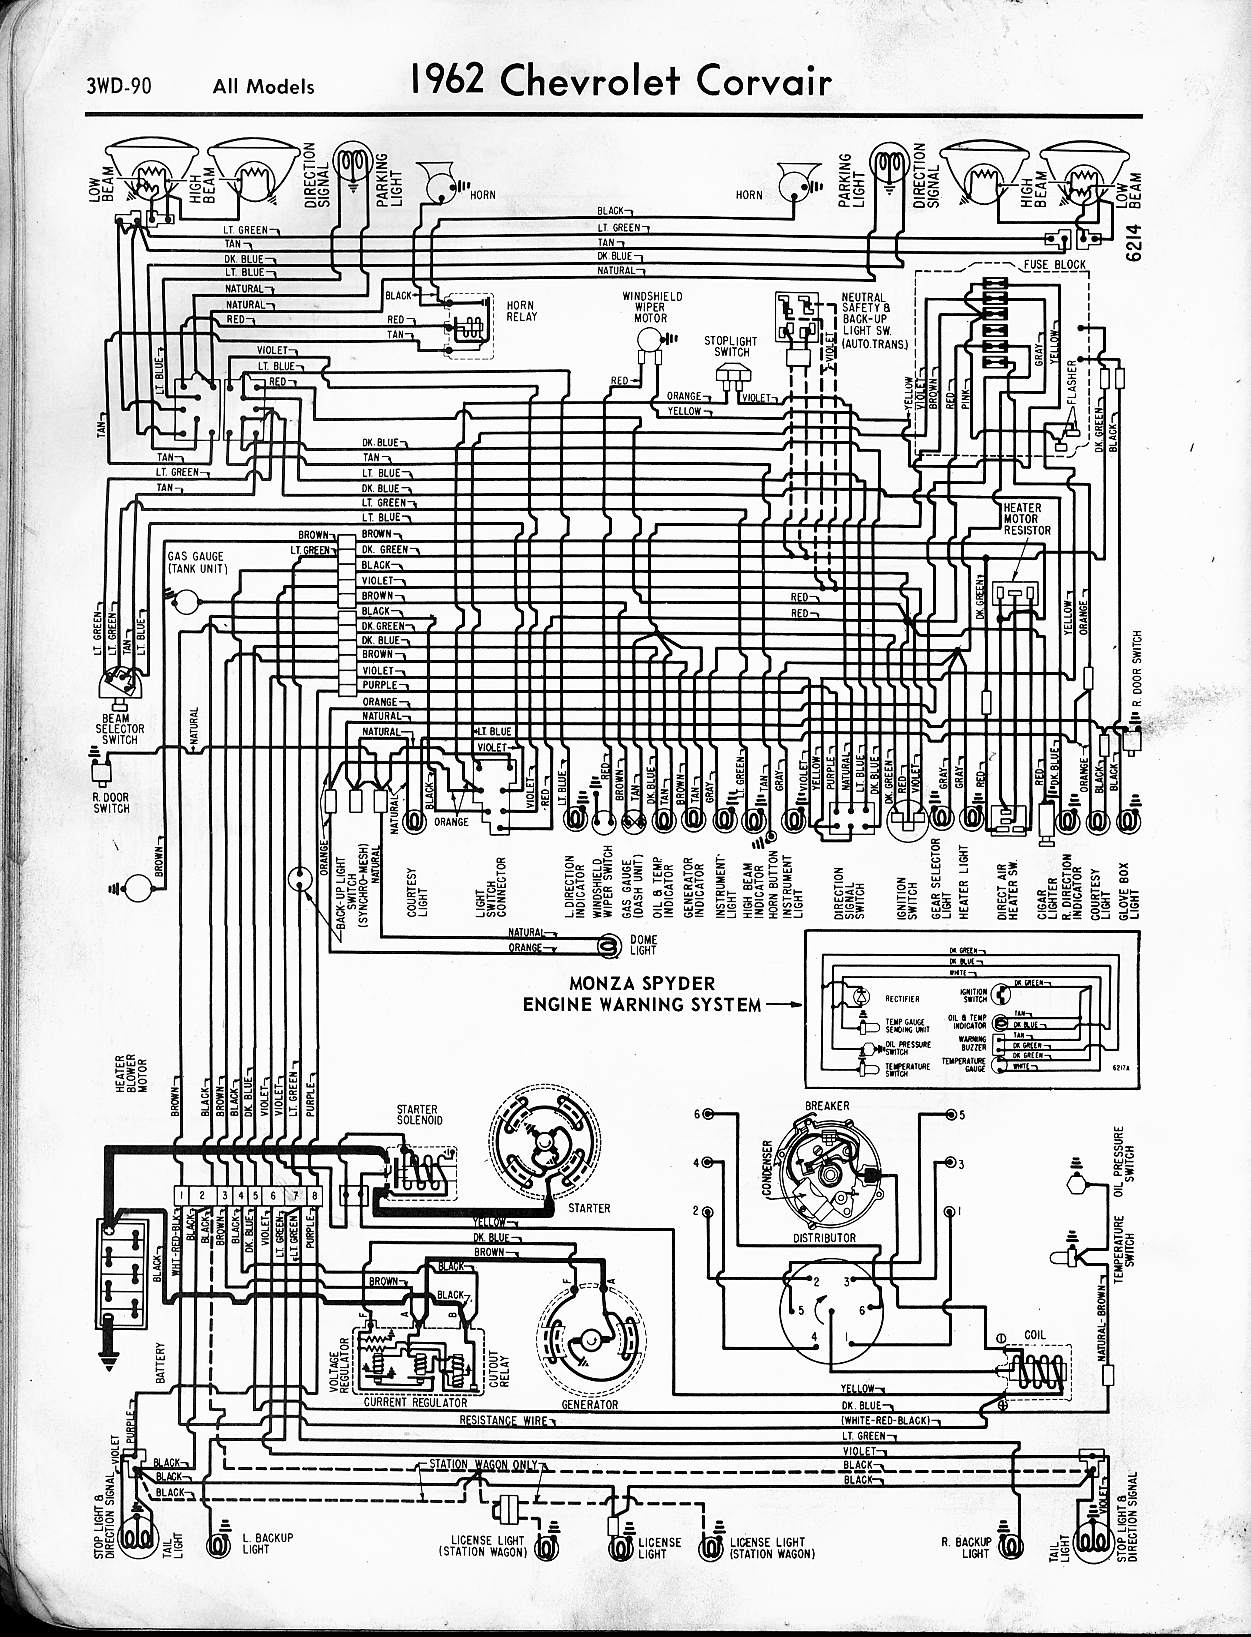 MWireChev62_3WD 090 57 65 chevy wiring diagrams 1964 corvair wiring diagram at love-stories.co